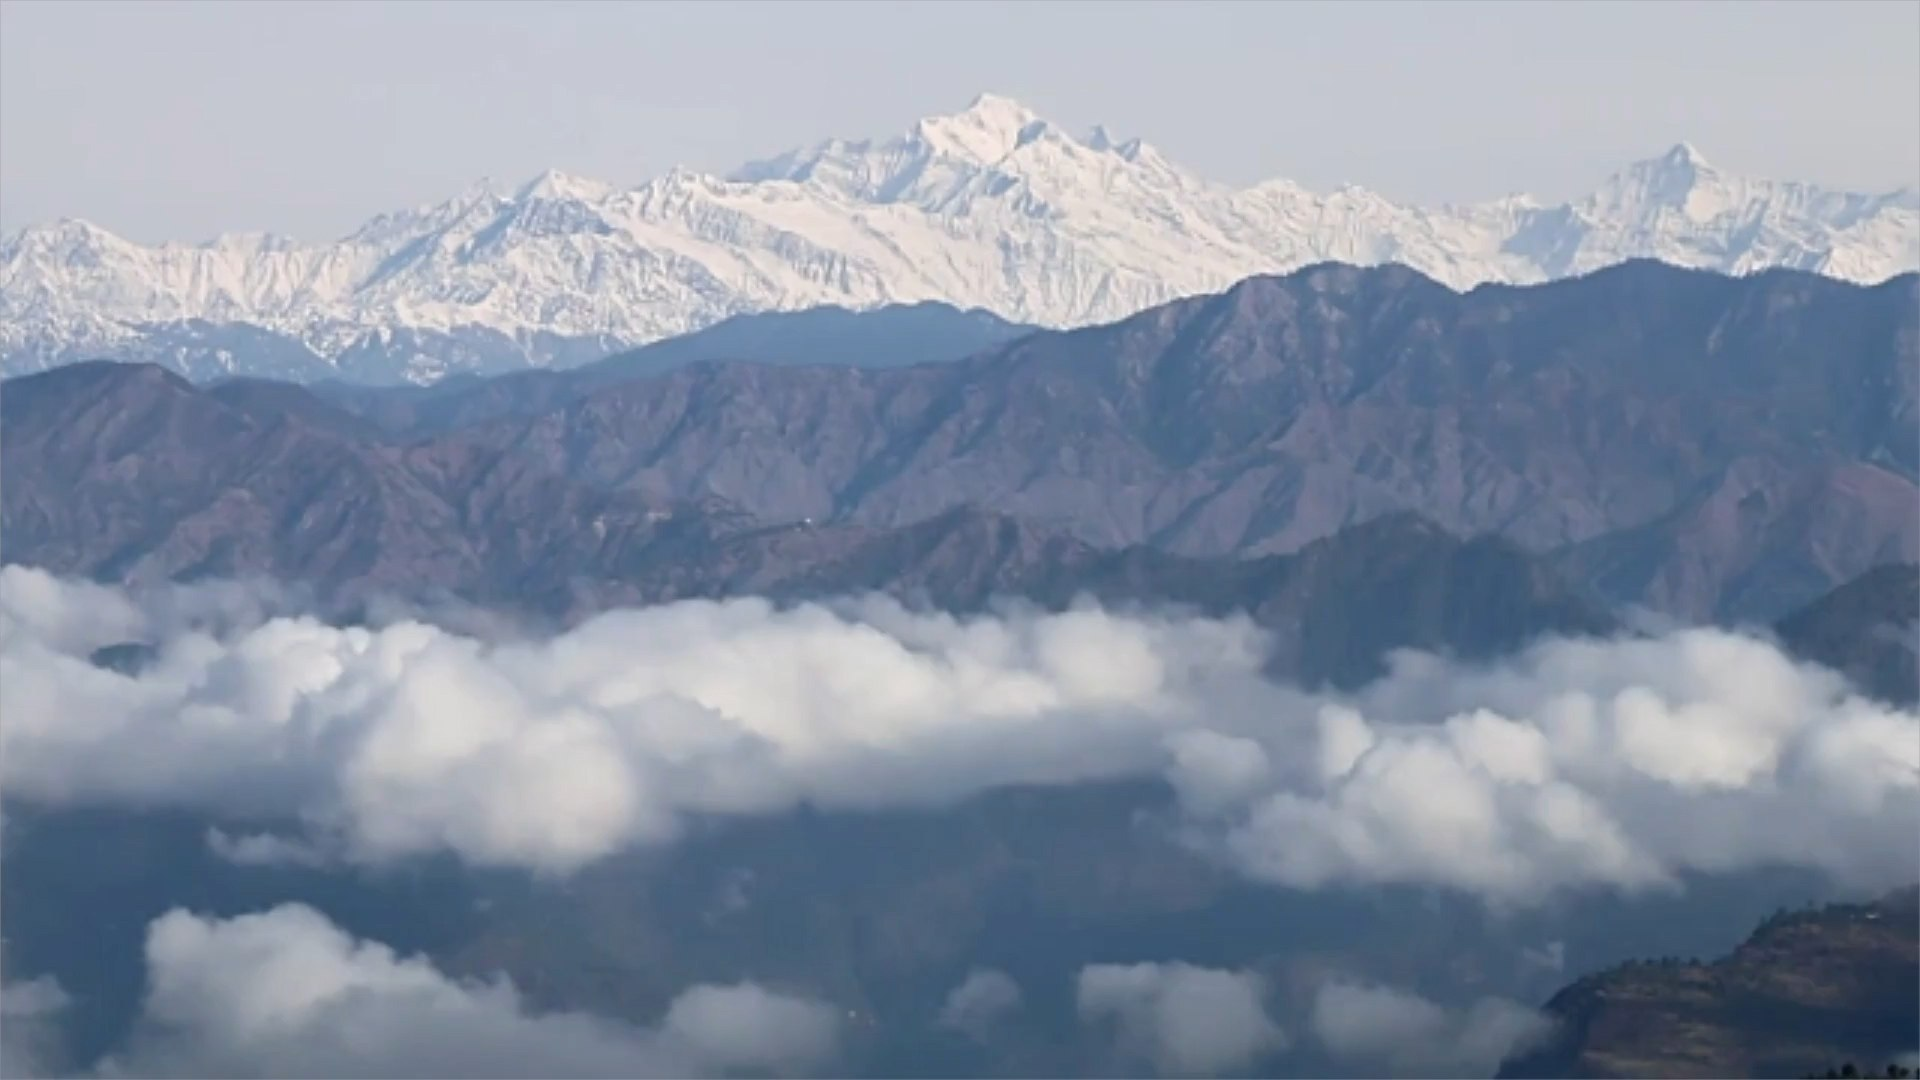 People in India Can See the Himalayas for the First Time in 'Decades'